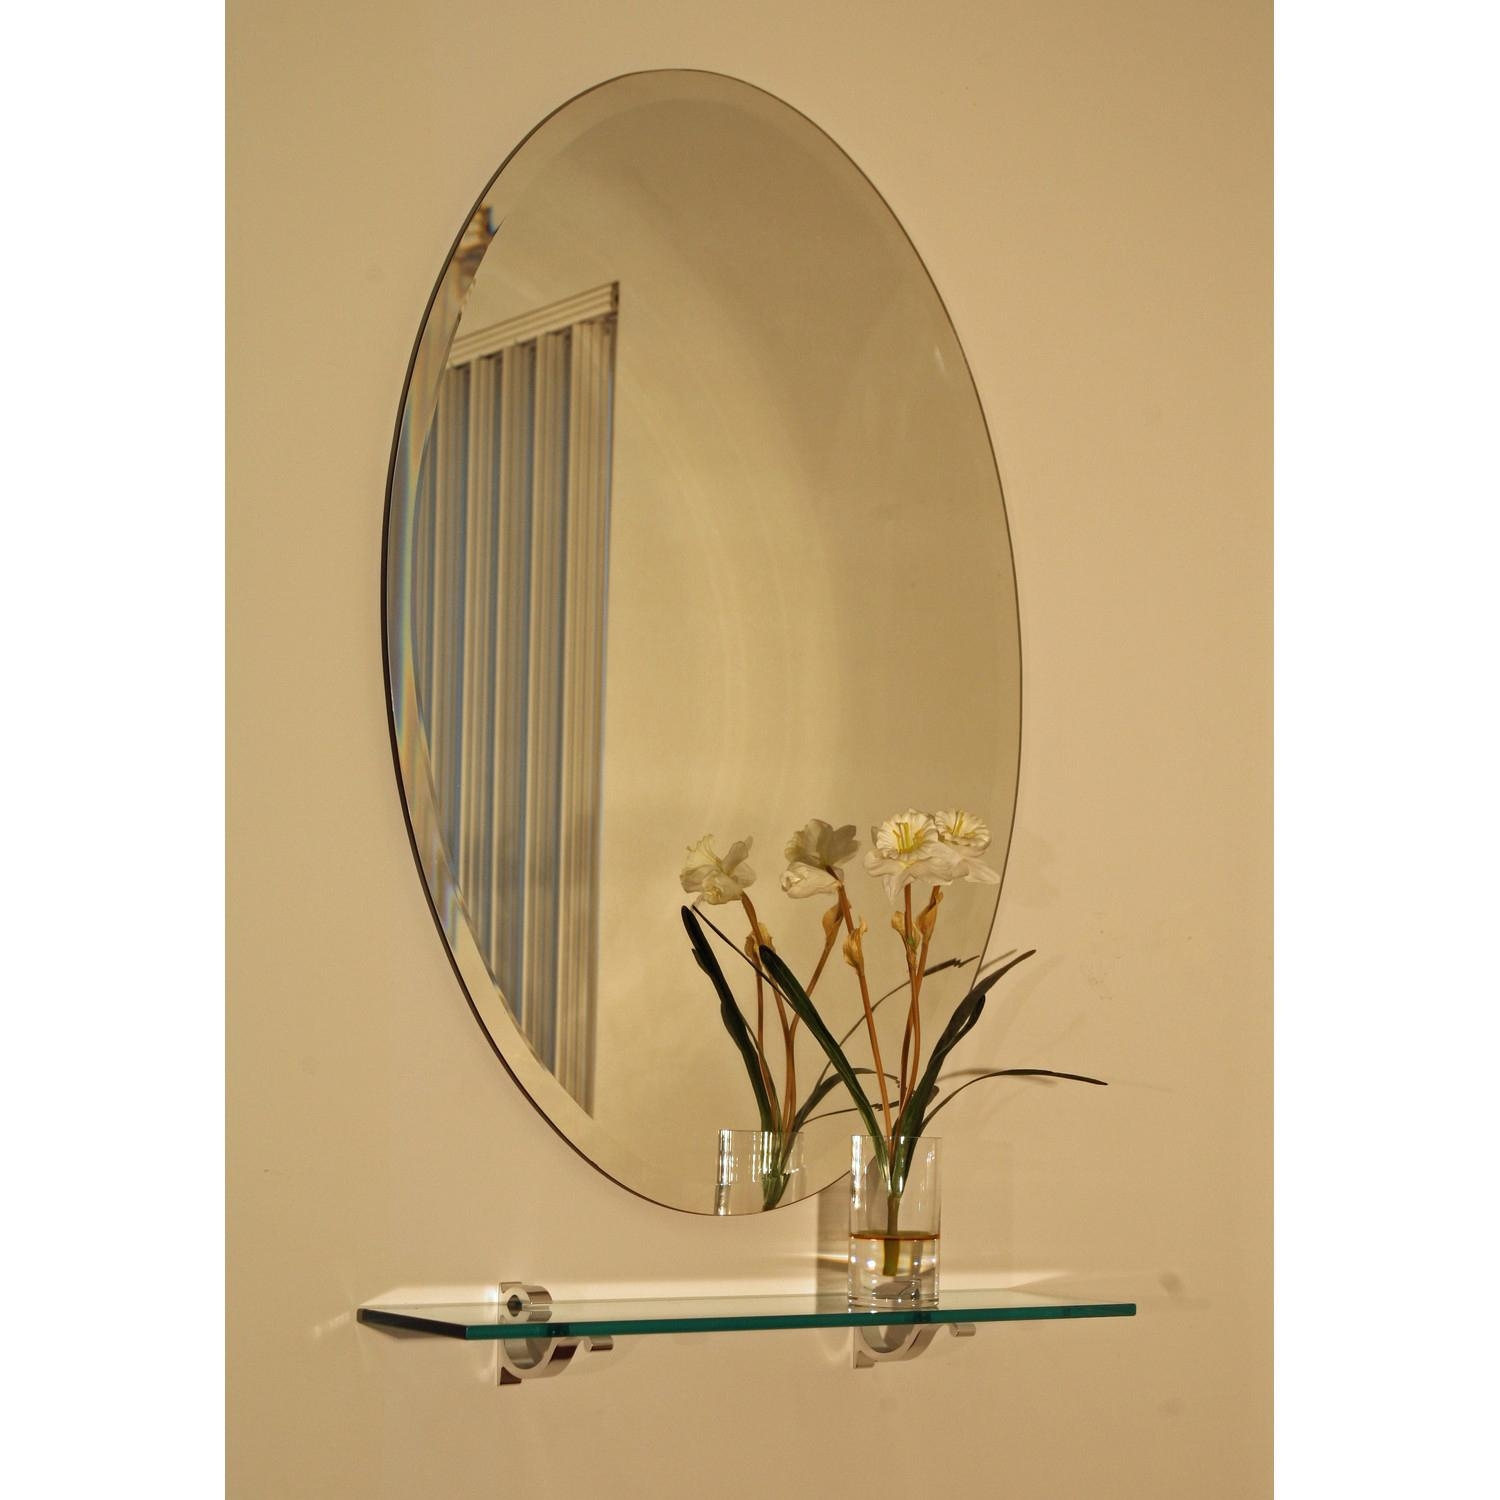 Regency 24 X 36 Oval Beveled Edge Mirror Spancraft Wall Mirror Throughout Beveled Edge Oval Mirror (View 5 of 20)